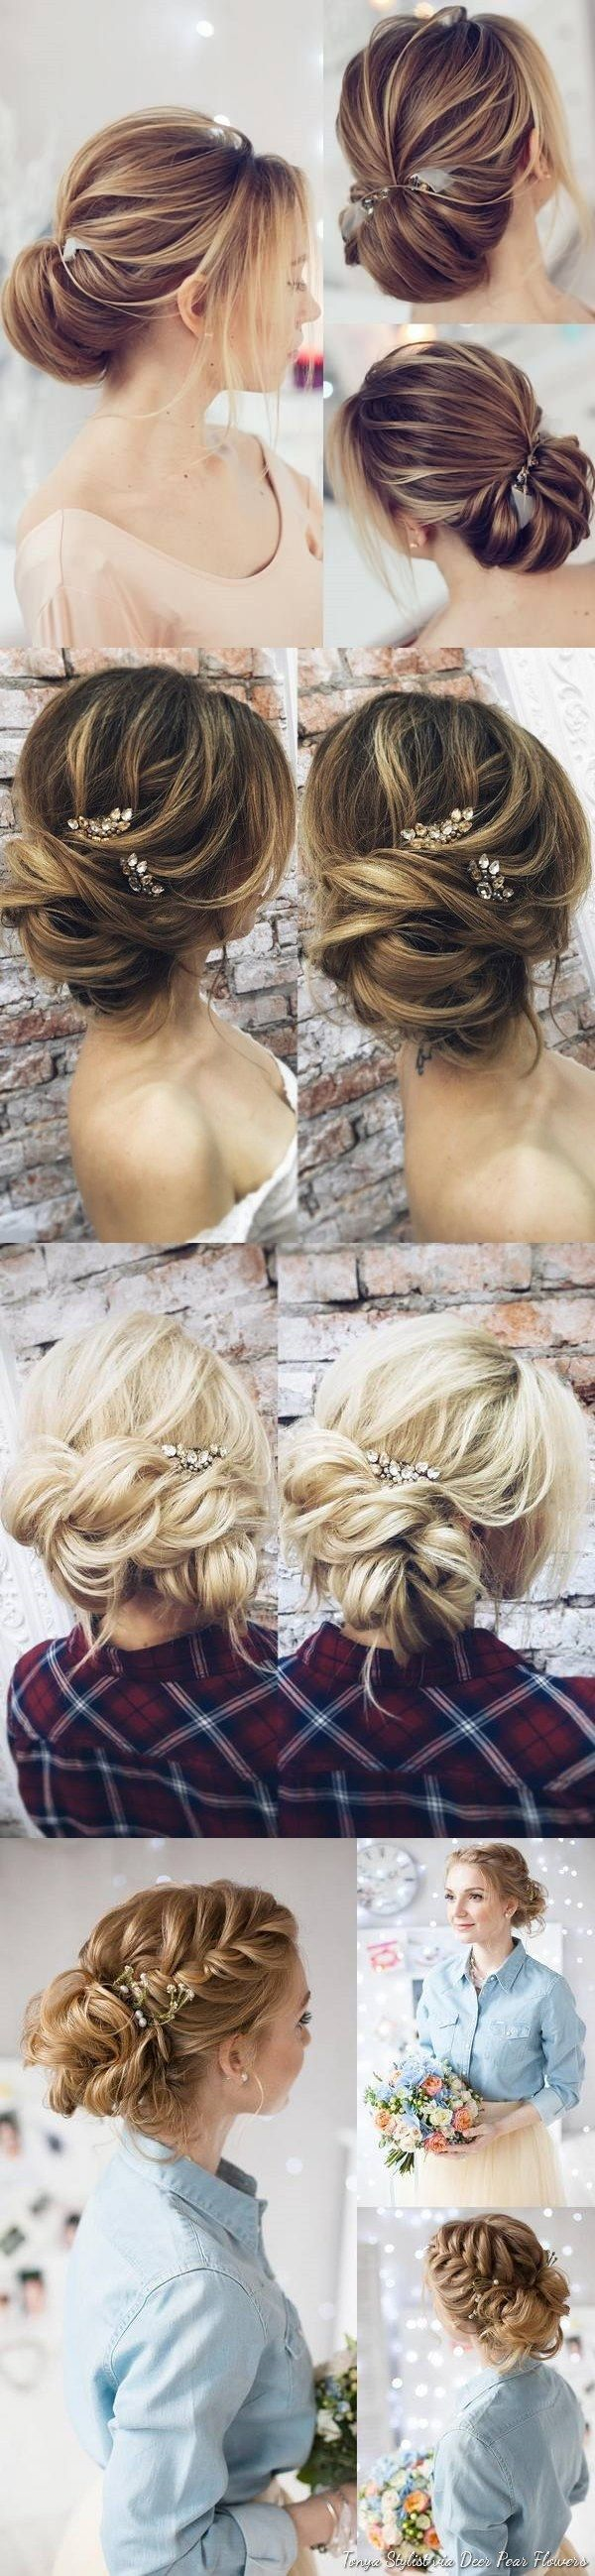 Id E Tendance Coupe Coiffure Femme 2017 2018 Coiffure De Mariage Wedding Hairstyles For